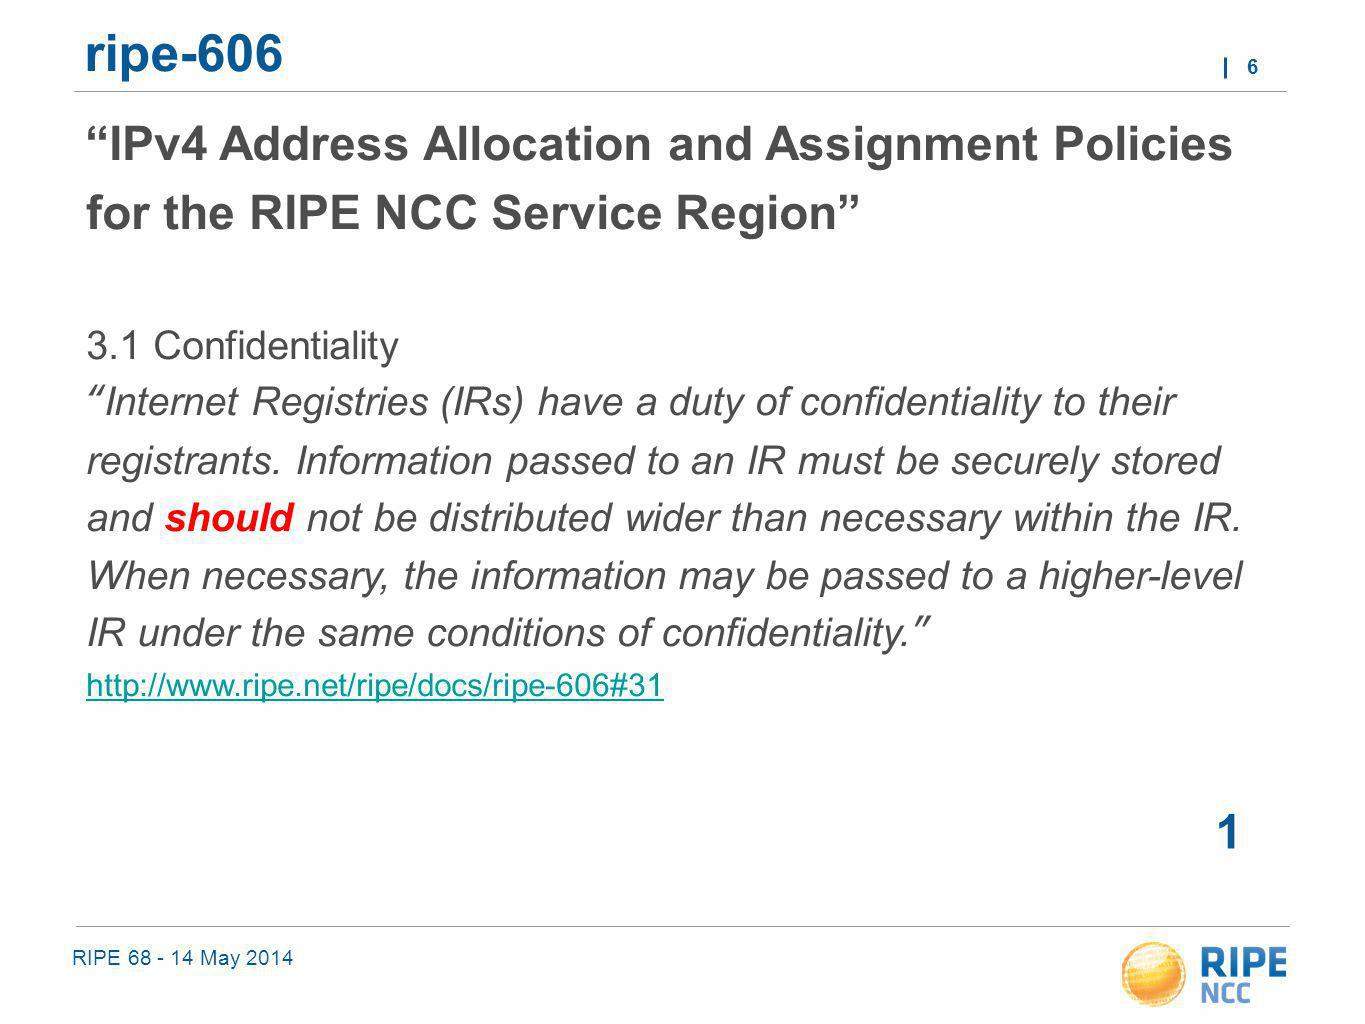 RIPE 68 - 14 May 2014 6 ripe-606 1 IPv4 Address Allocation and Assignment Policies for the RIPE NCC Service Region 3.1 Confidentiality Internet Registries (IRs) have a duty of confidentiality to their registrants.